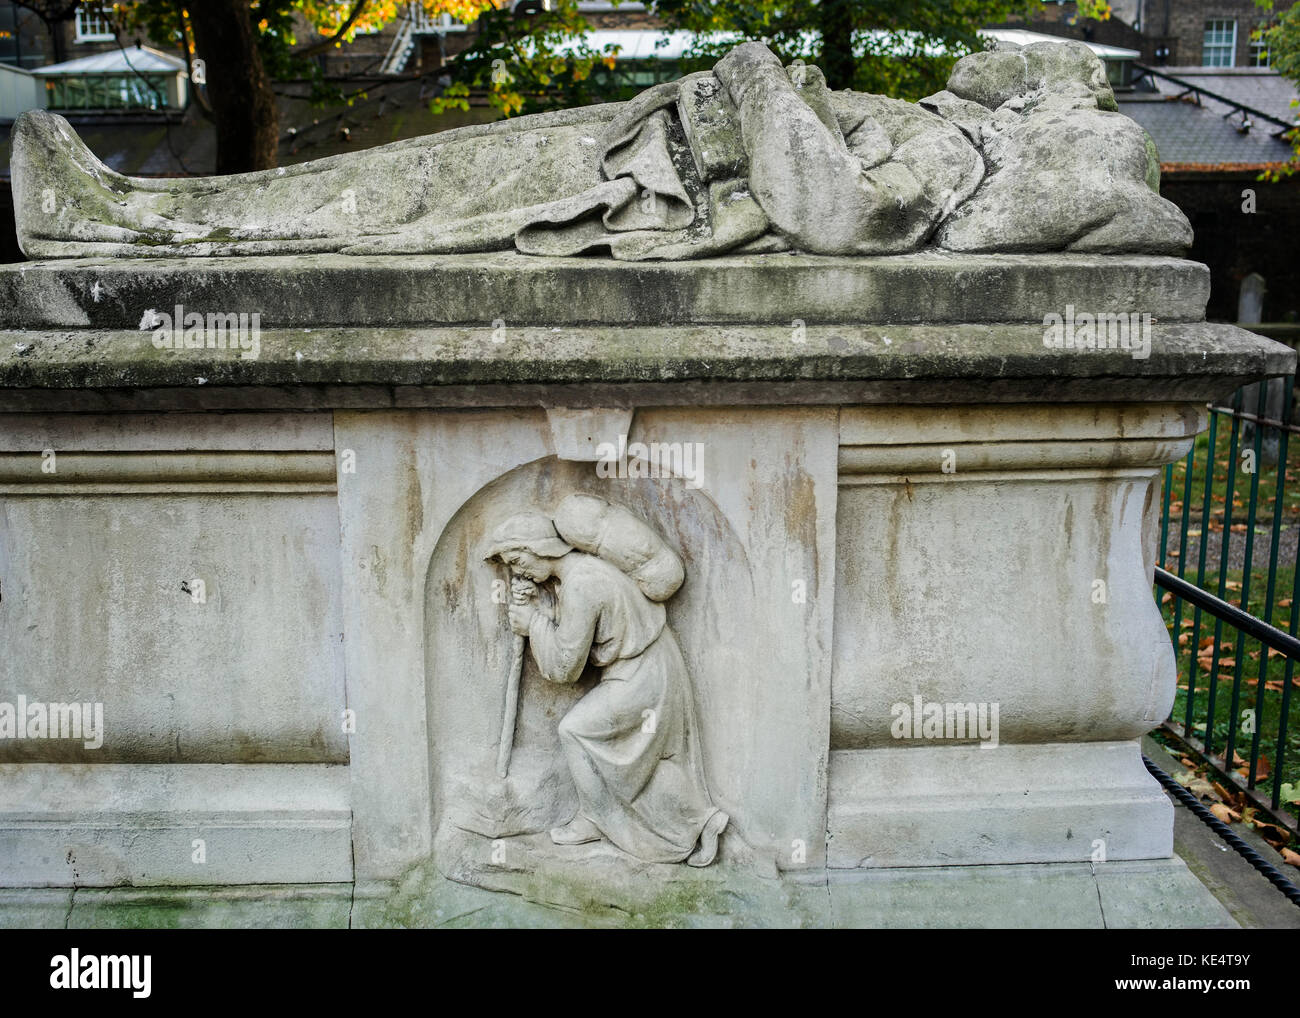 author John Bunyan tomb, Bunyan's effigy on his grave - Stock Image